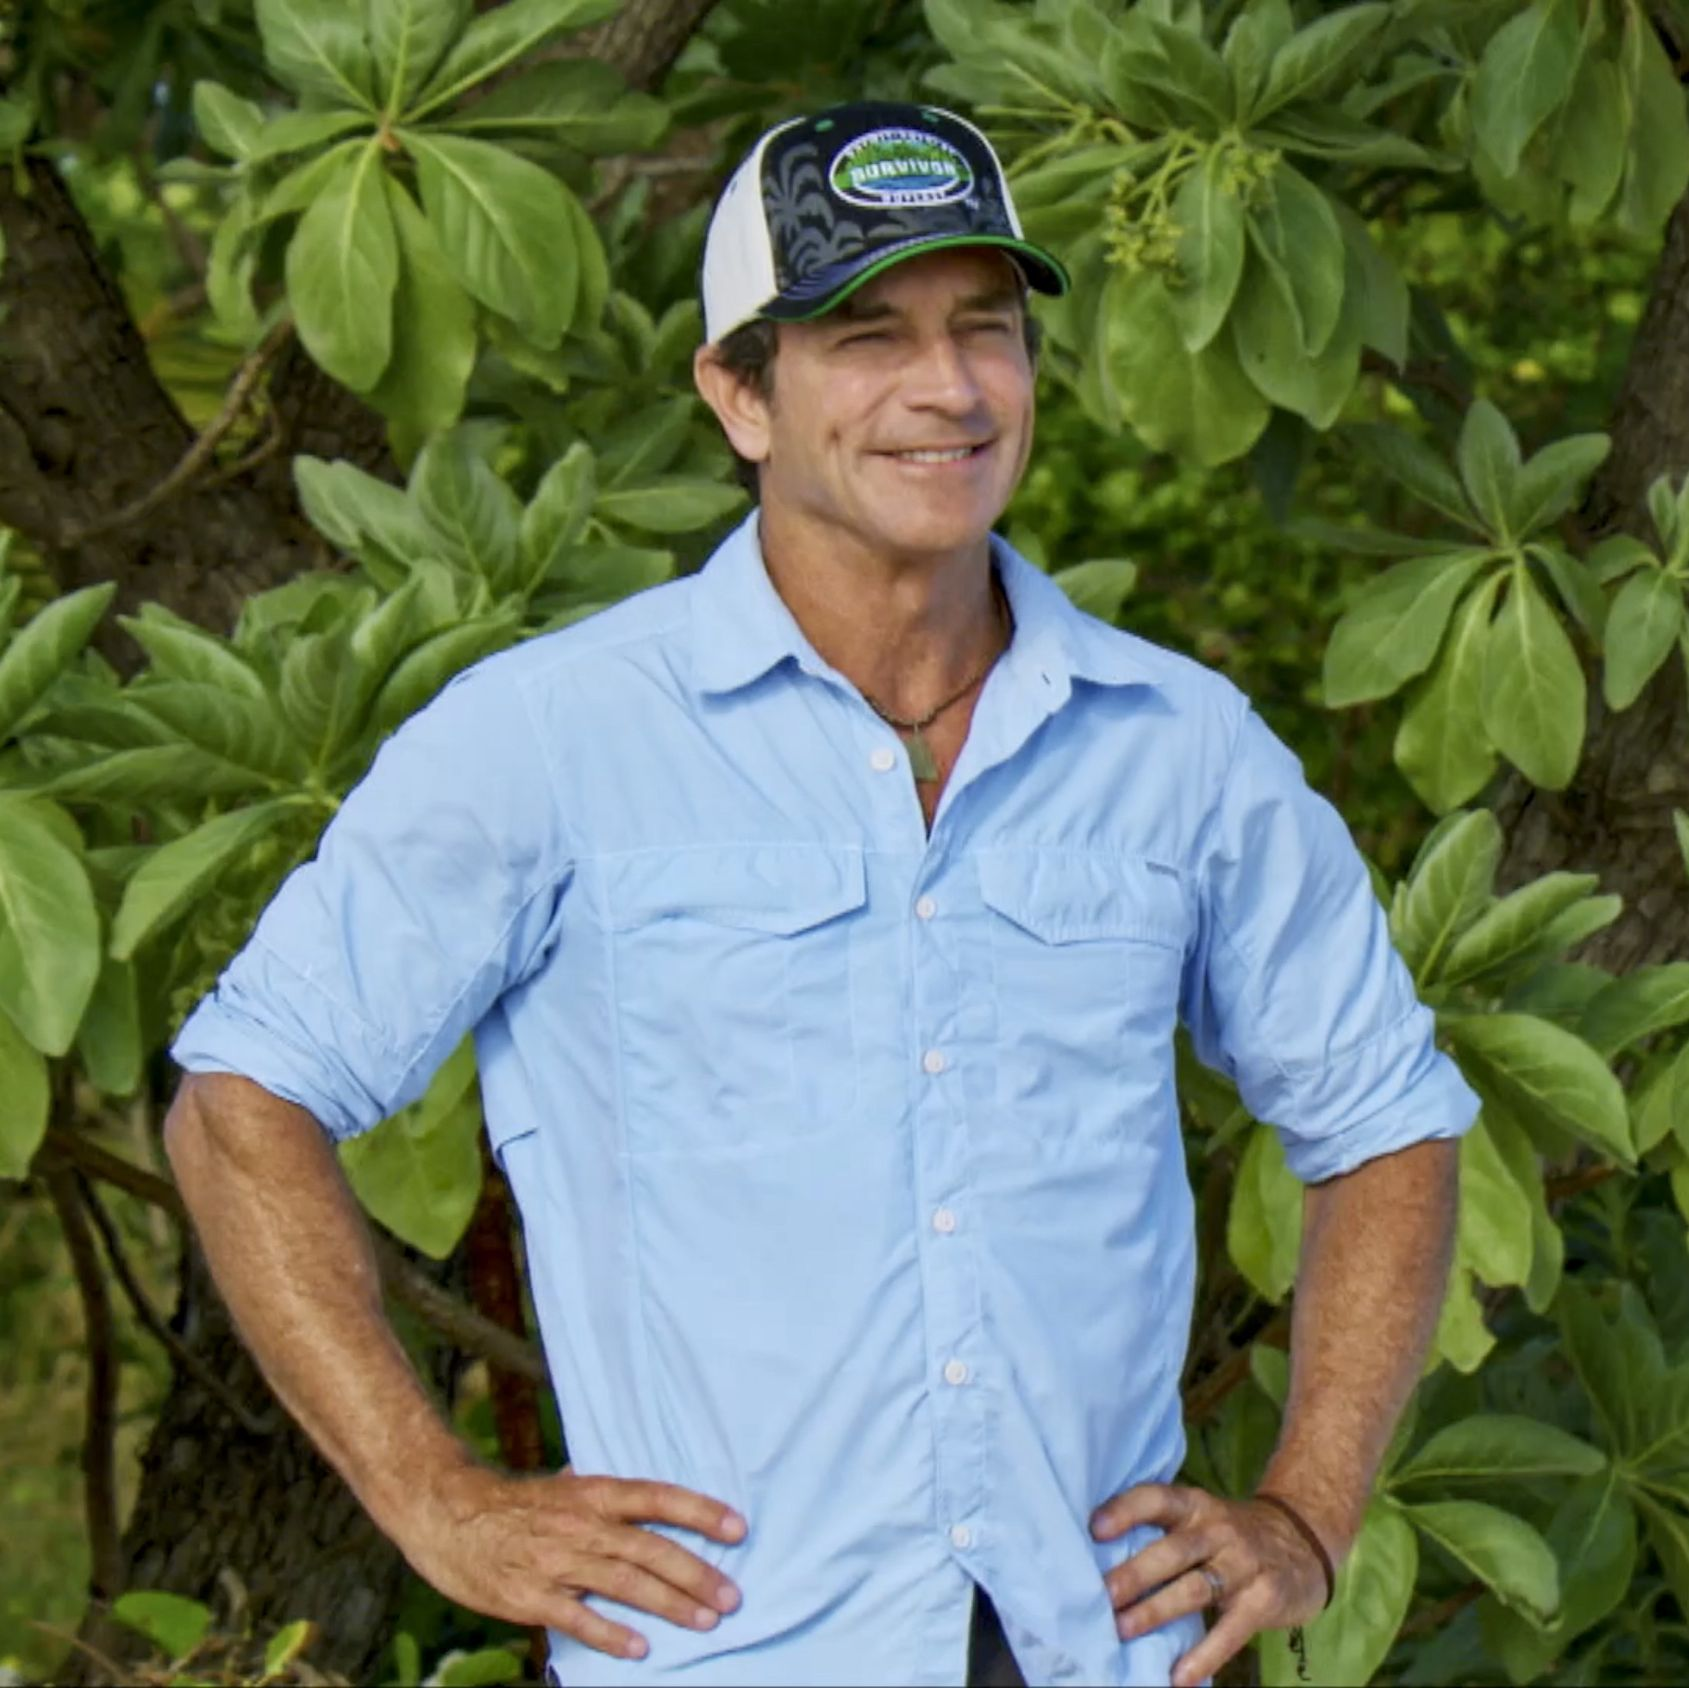 What Is Jeff Probst's Salary Per Survivor Episode? Here's What We Know.